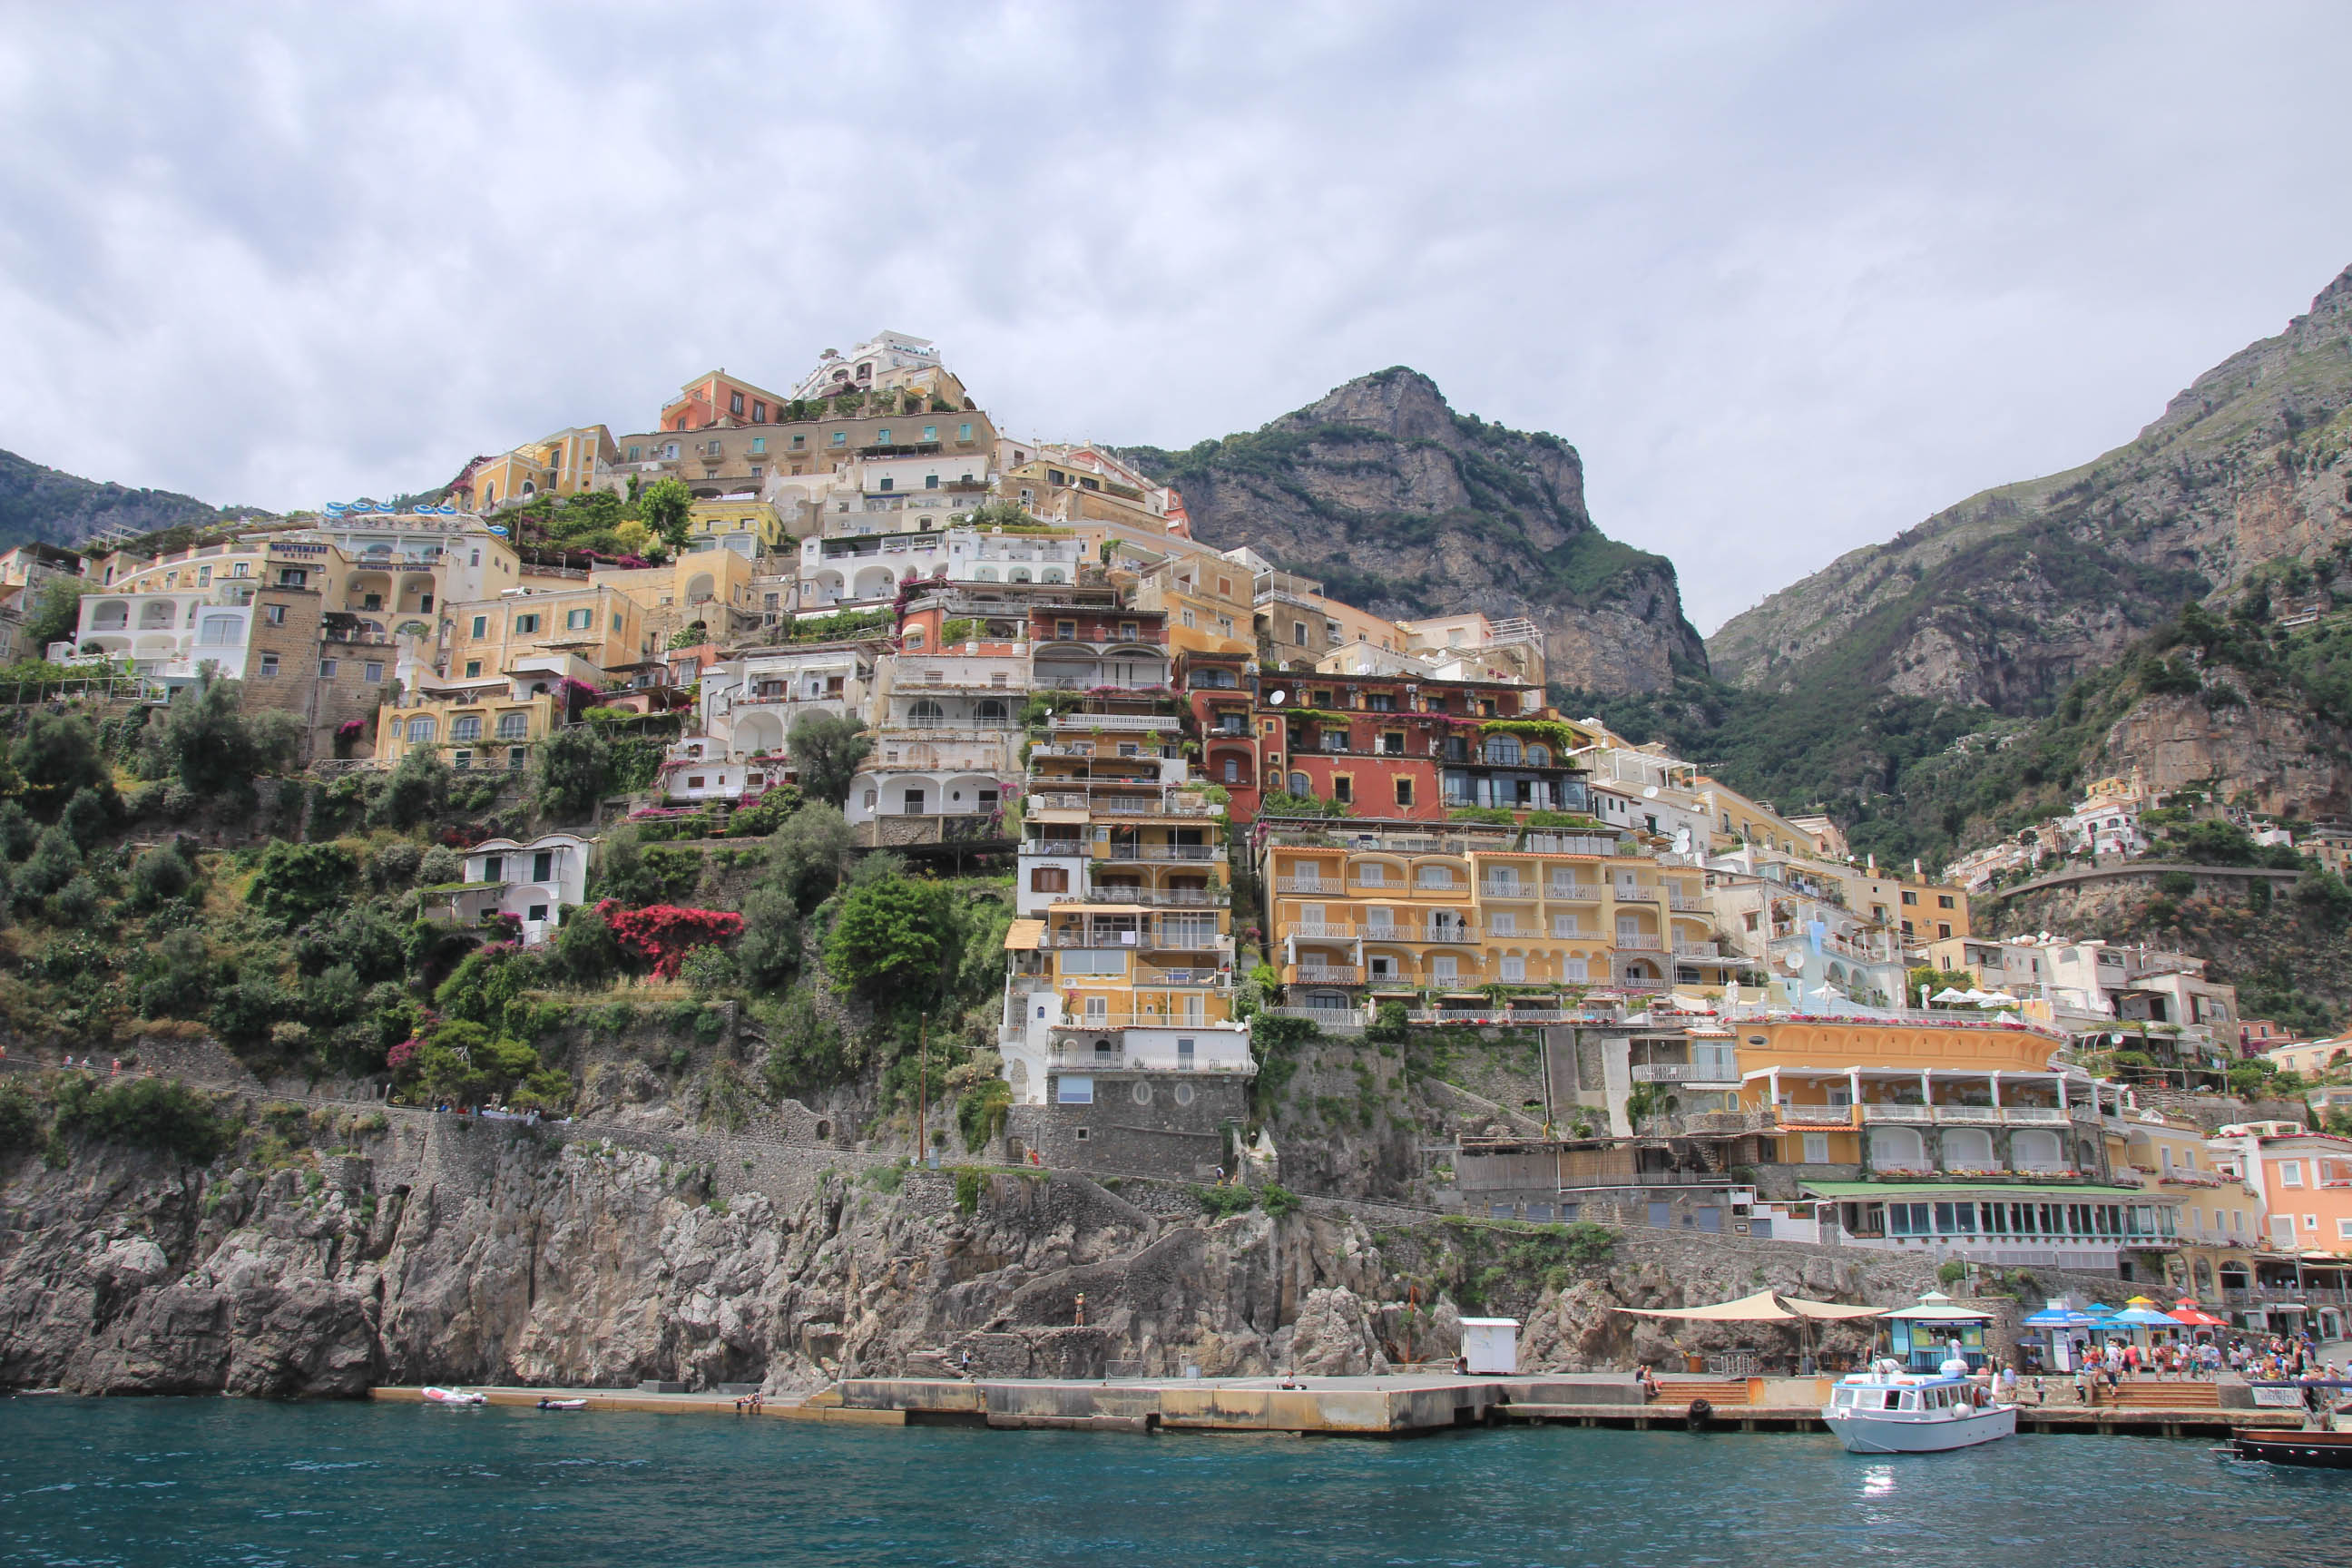 Positano as seen from the sea inward